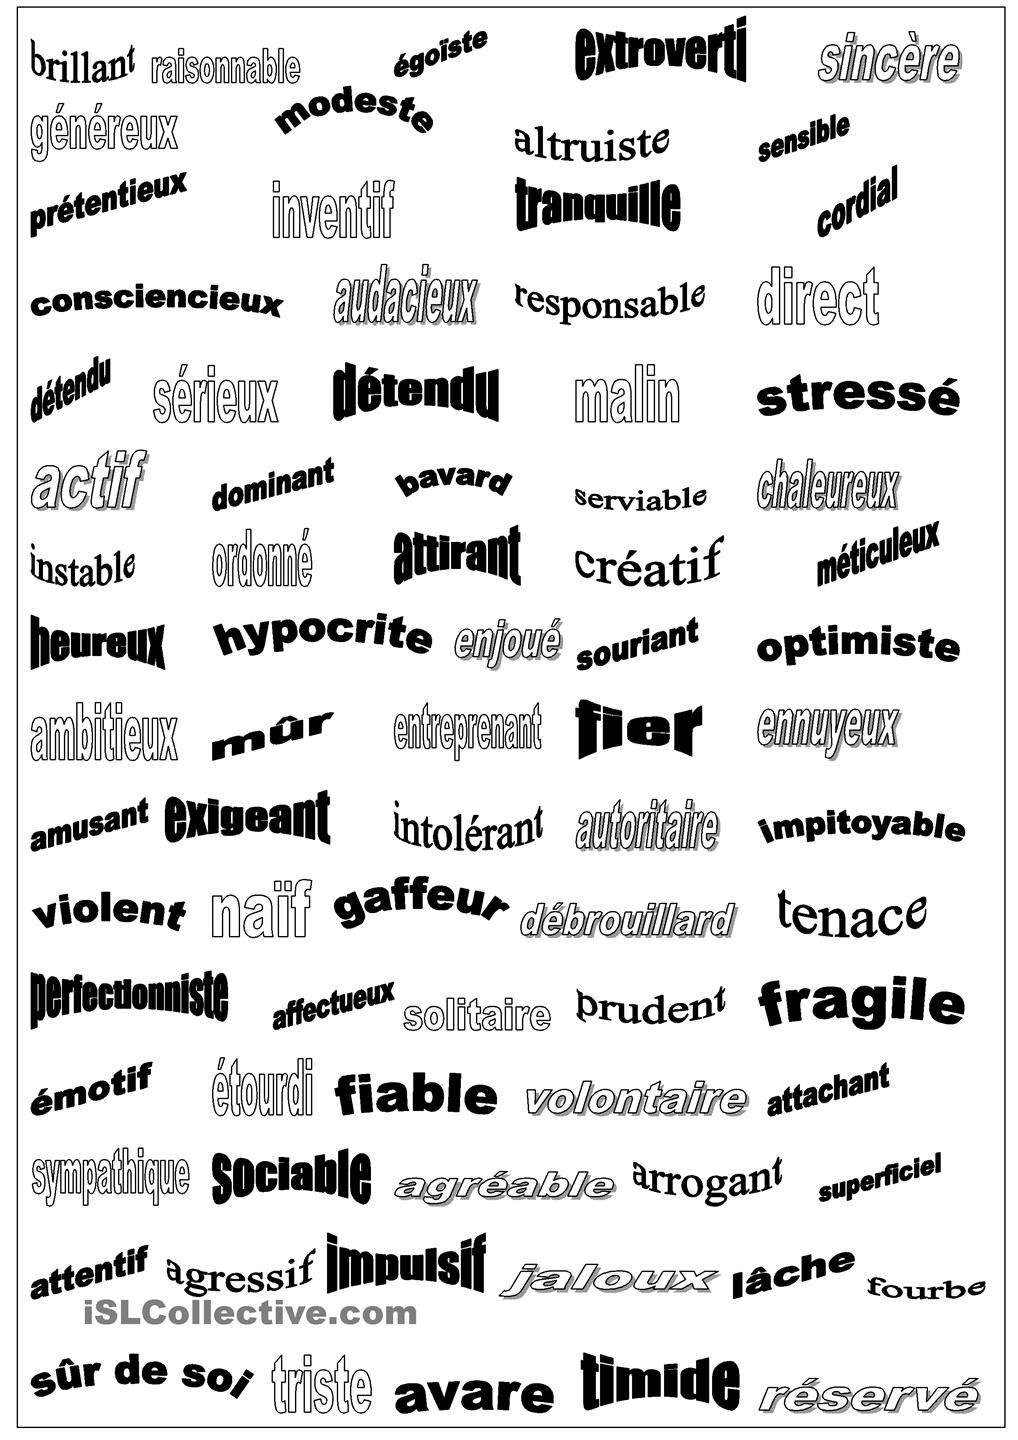 handout of french adjectives describing personality traits